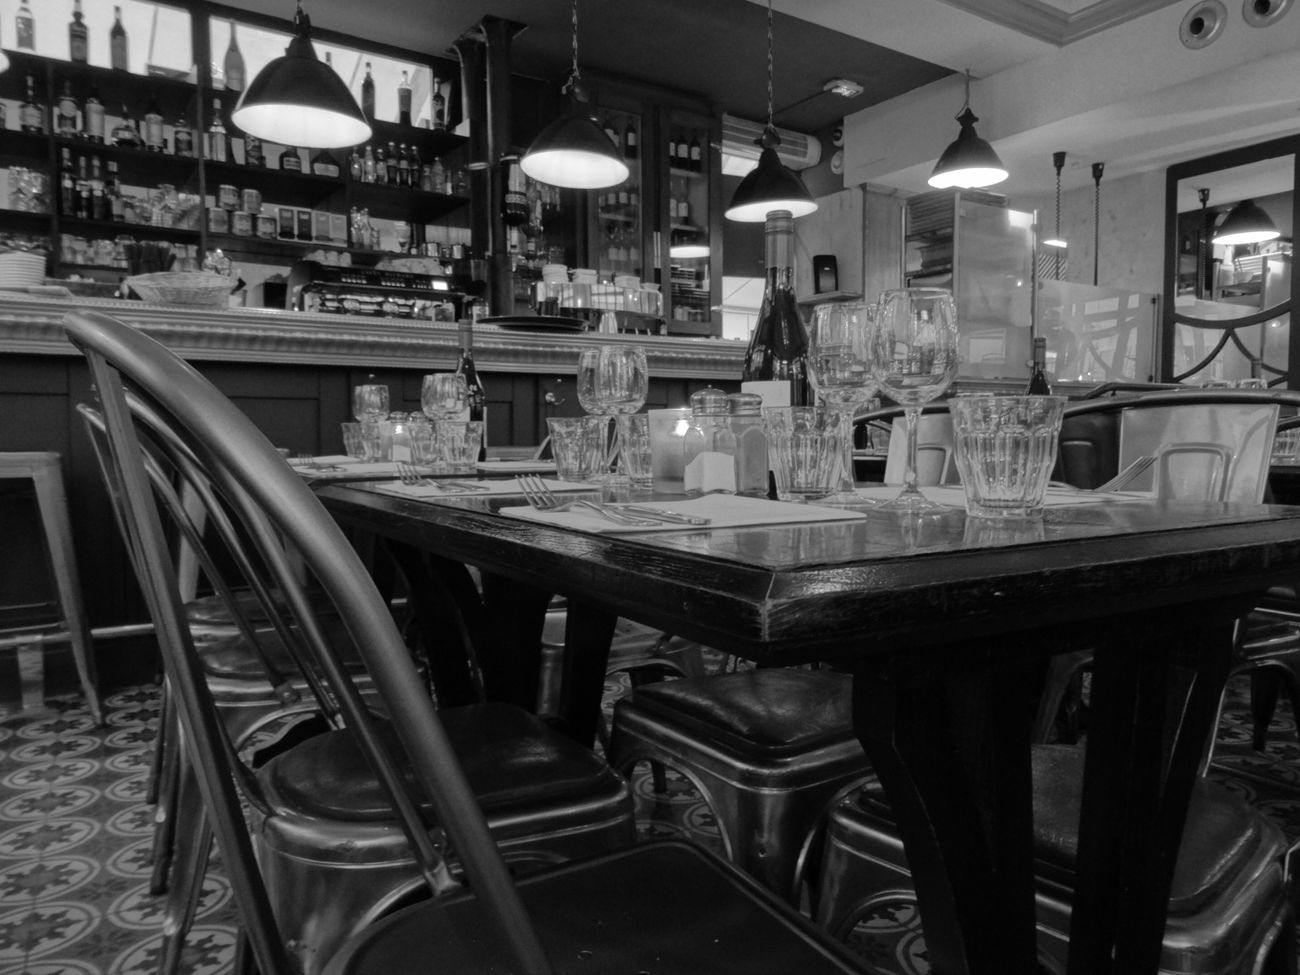 Table Food And Drink Industry No People Indoors  First Eyeem Photo Blackandwhite Noir Et Blanc Street City Palatium Restaurant Restaurants Restaurant Decor Restauration Restaurant Interior Design Restaurant Table Restaurant Art Resto Bordeaux France Bordeauxbynight Bordeauxmaville Bordeaux By Nigth Bordeauxtourism Bordeaux_focus_on